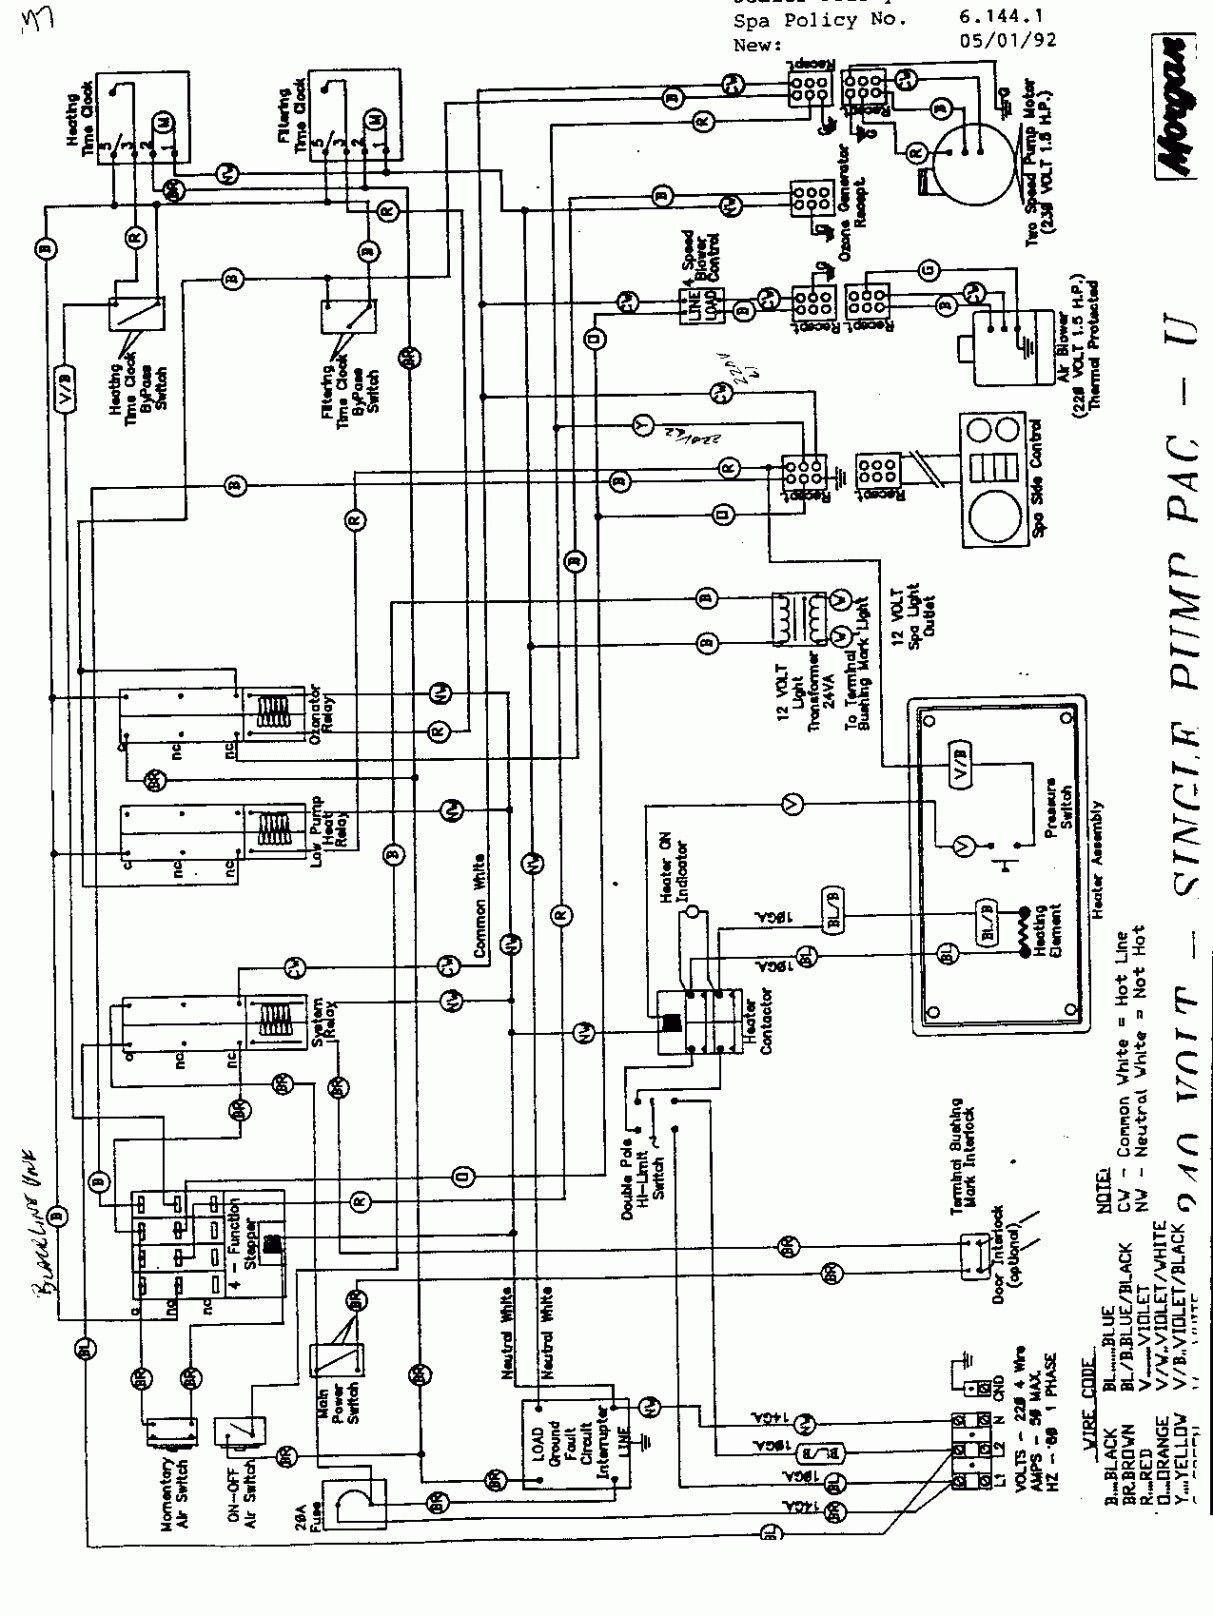 New Gfci Wiring Diagram For Hot Tub Diagram